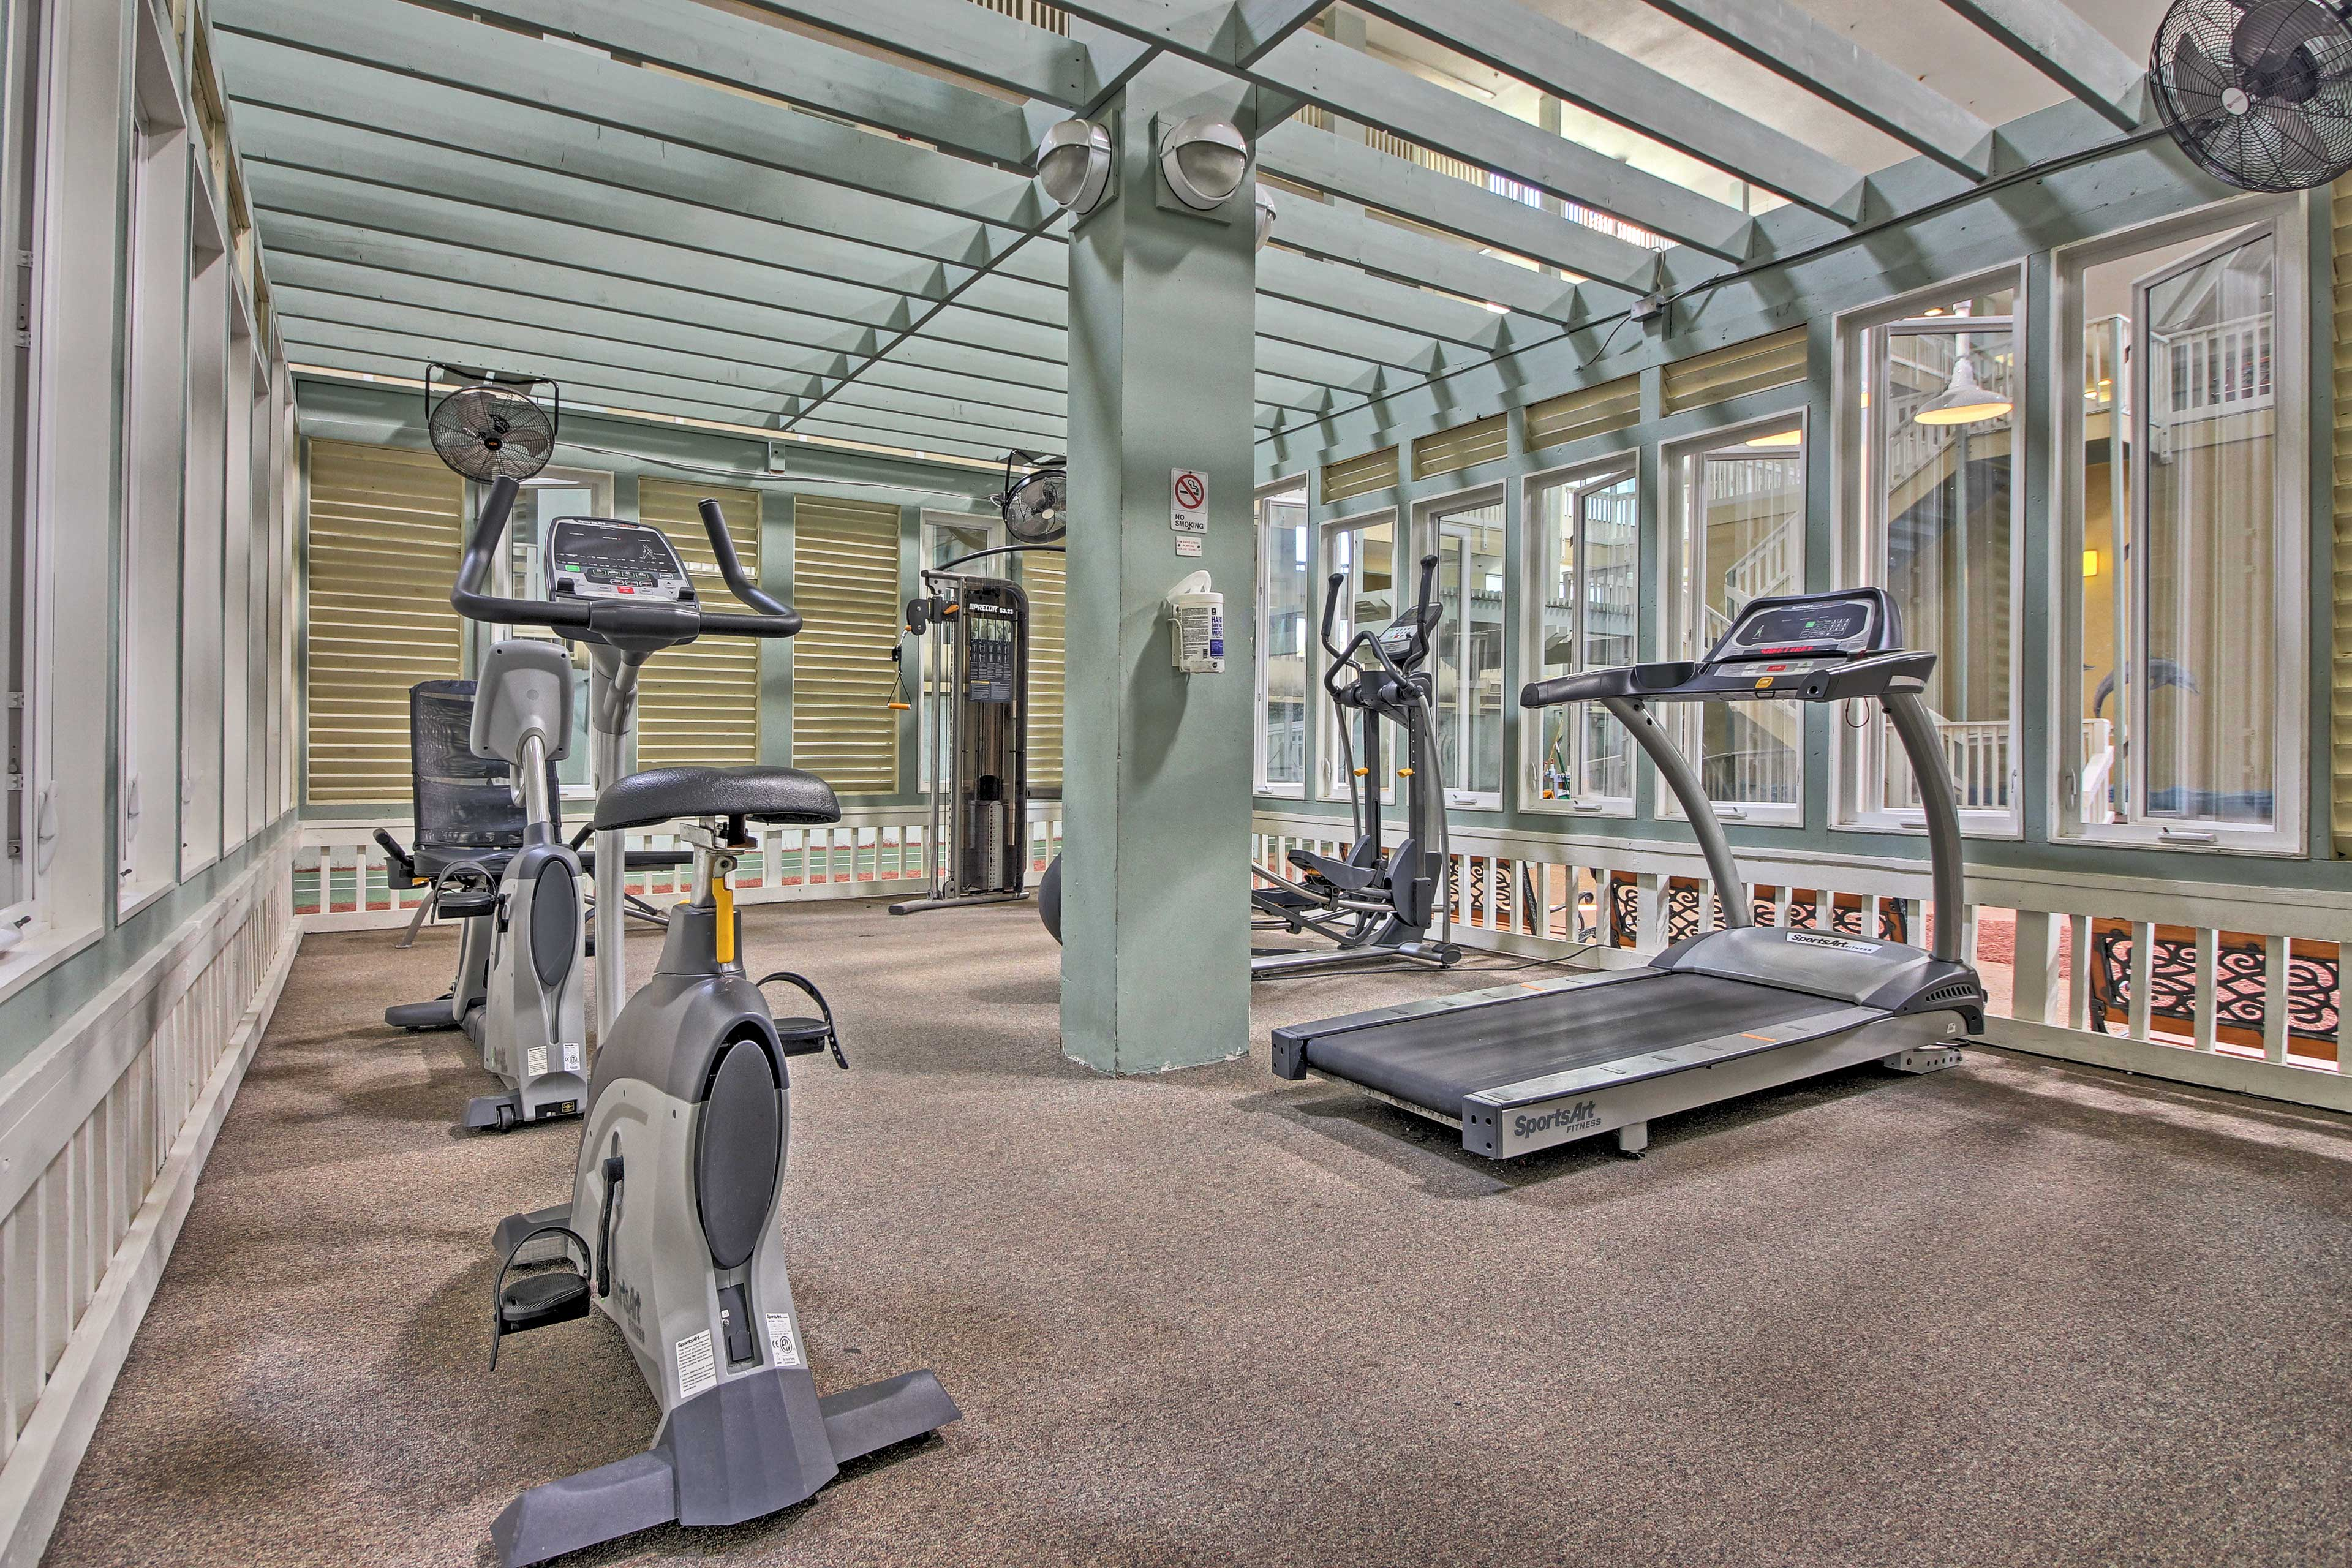 Gym junkies can utilize the fitness center found on site.